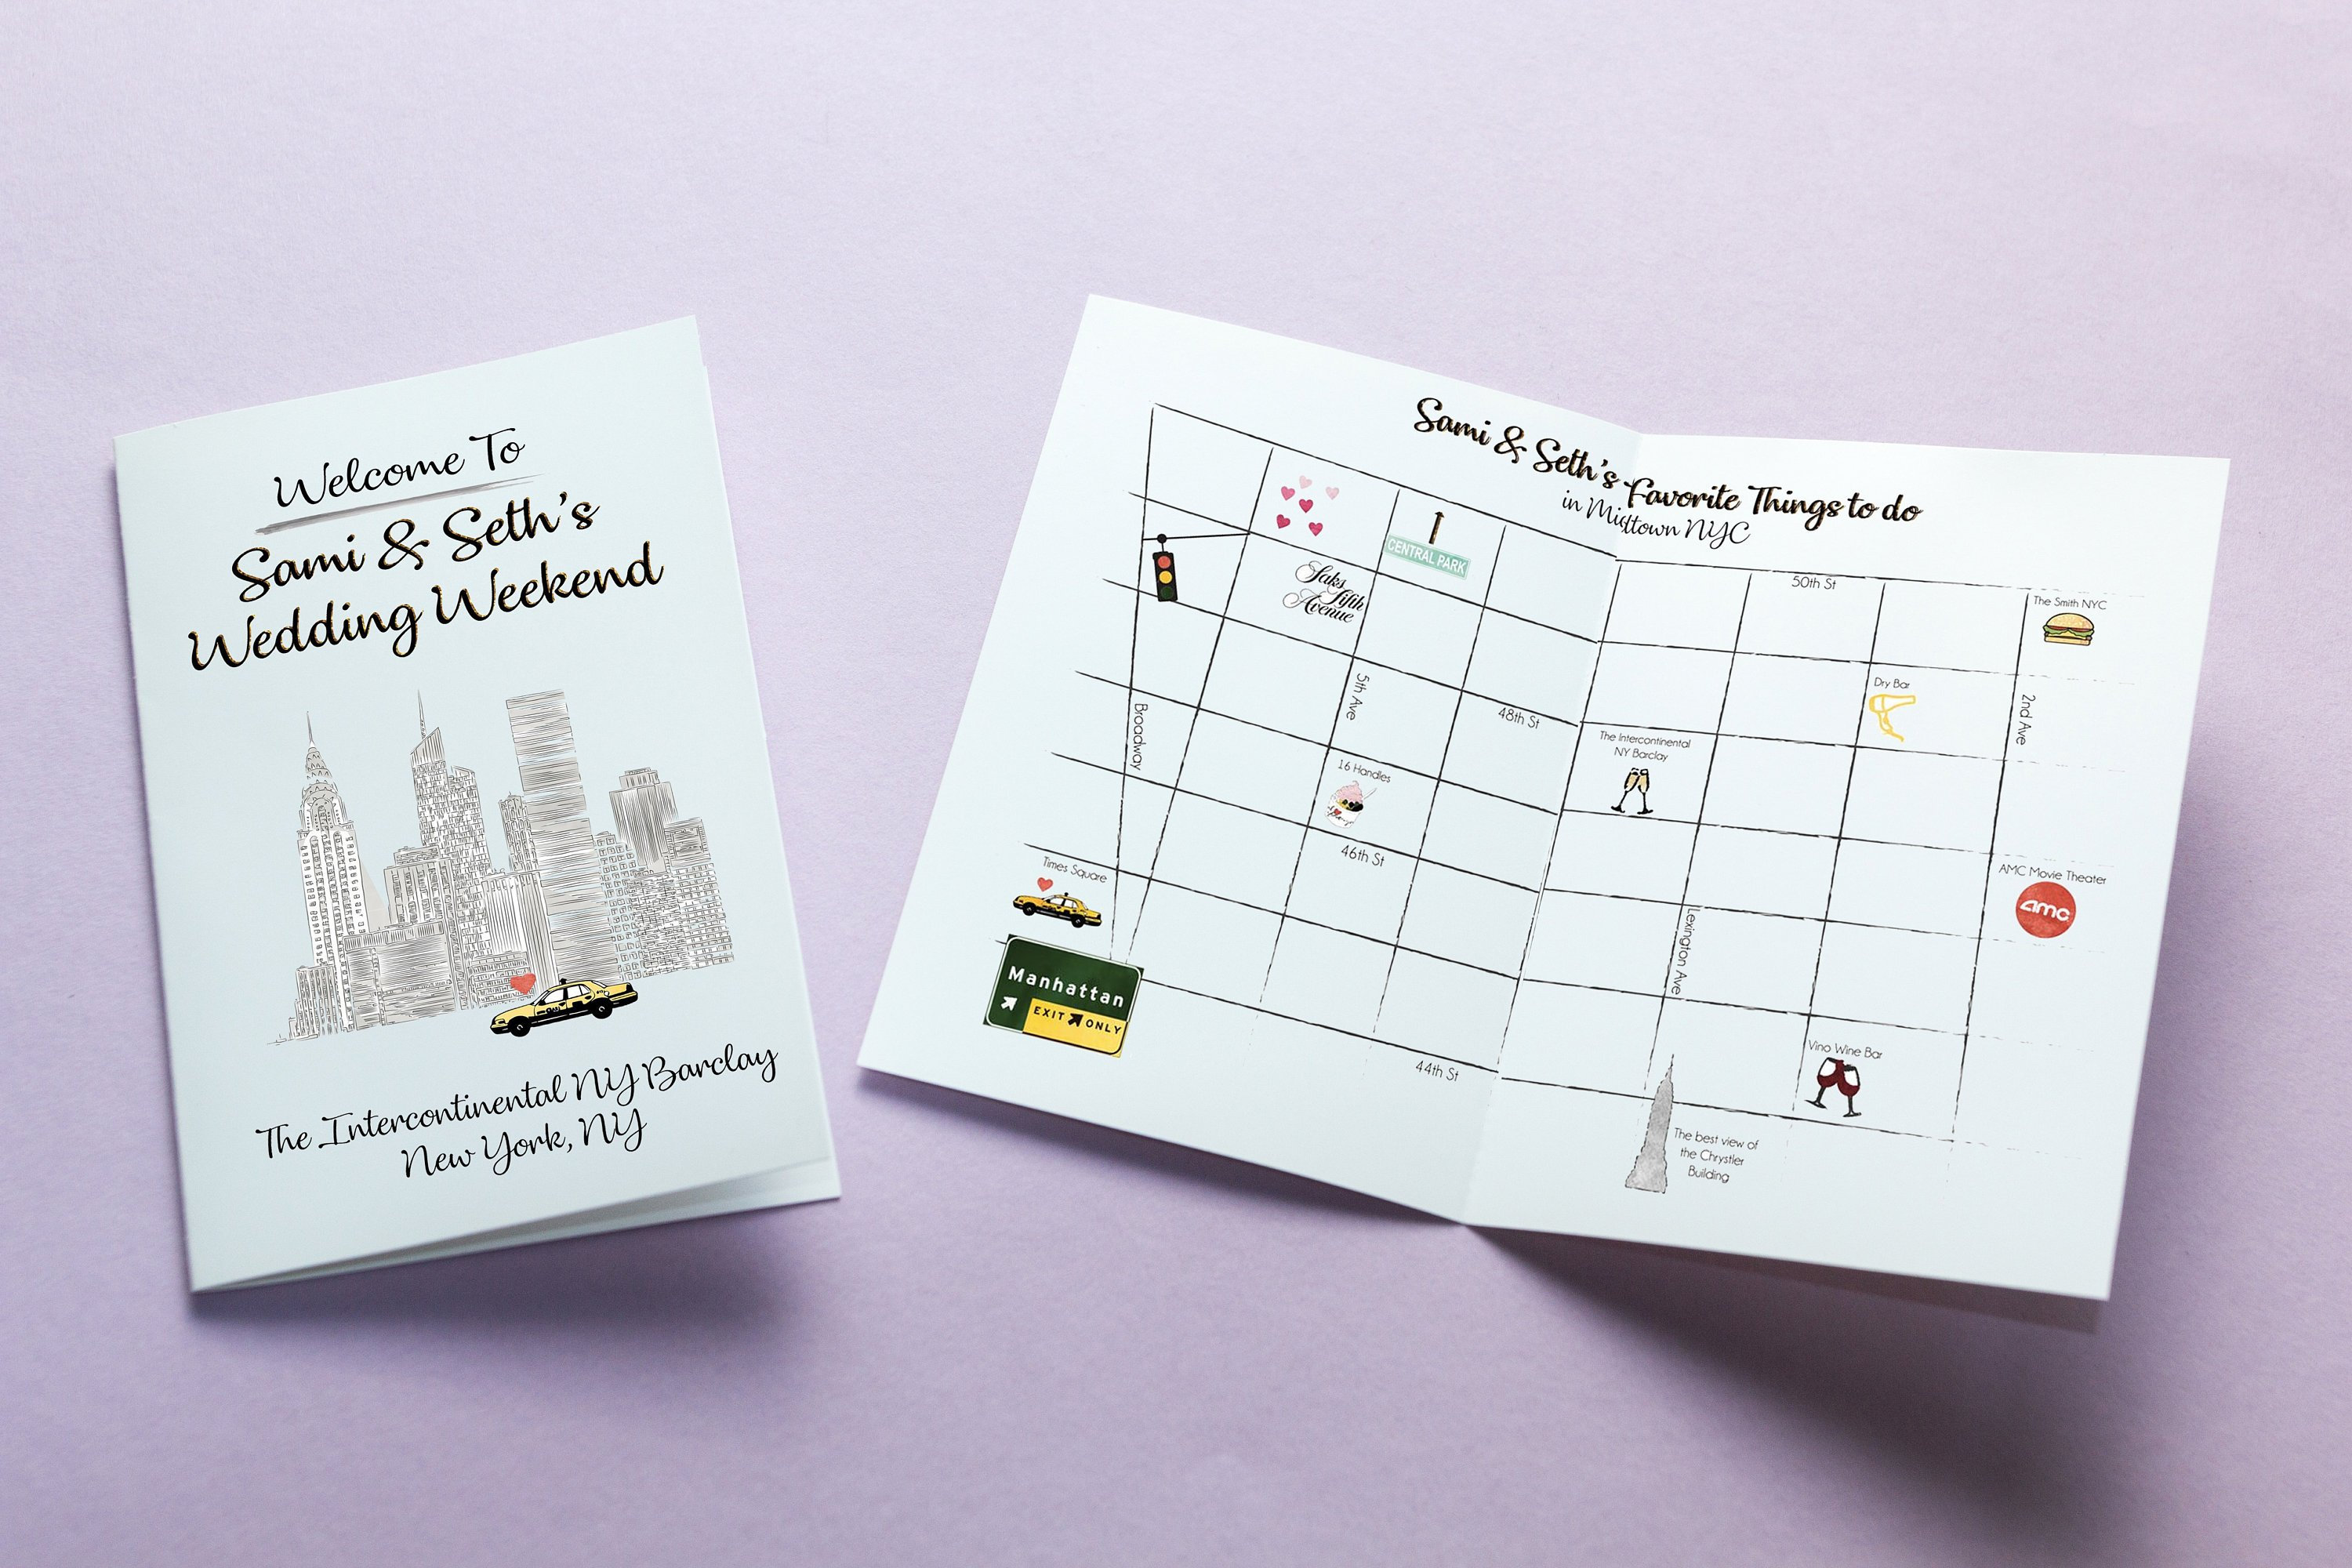 Wedding Weekend Itinerary With City Skyline Graphic & Map